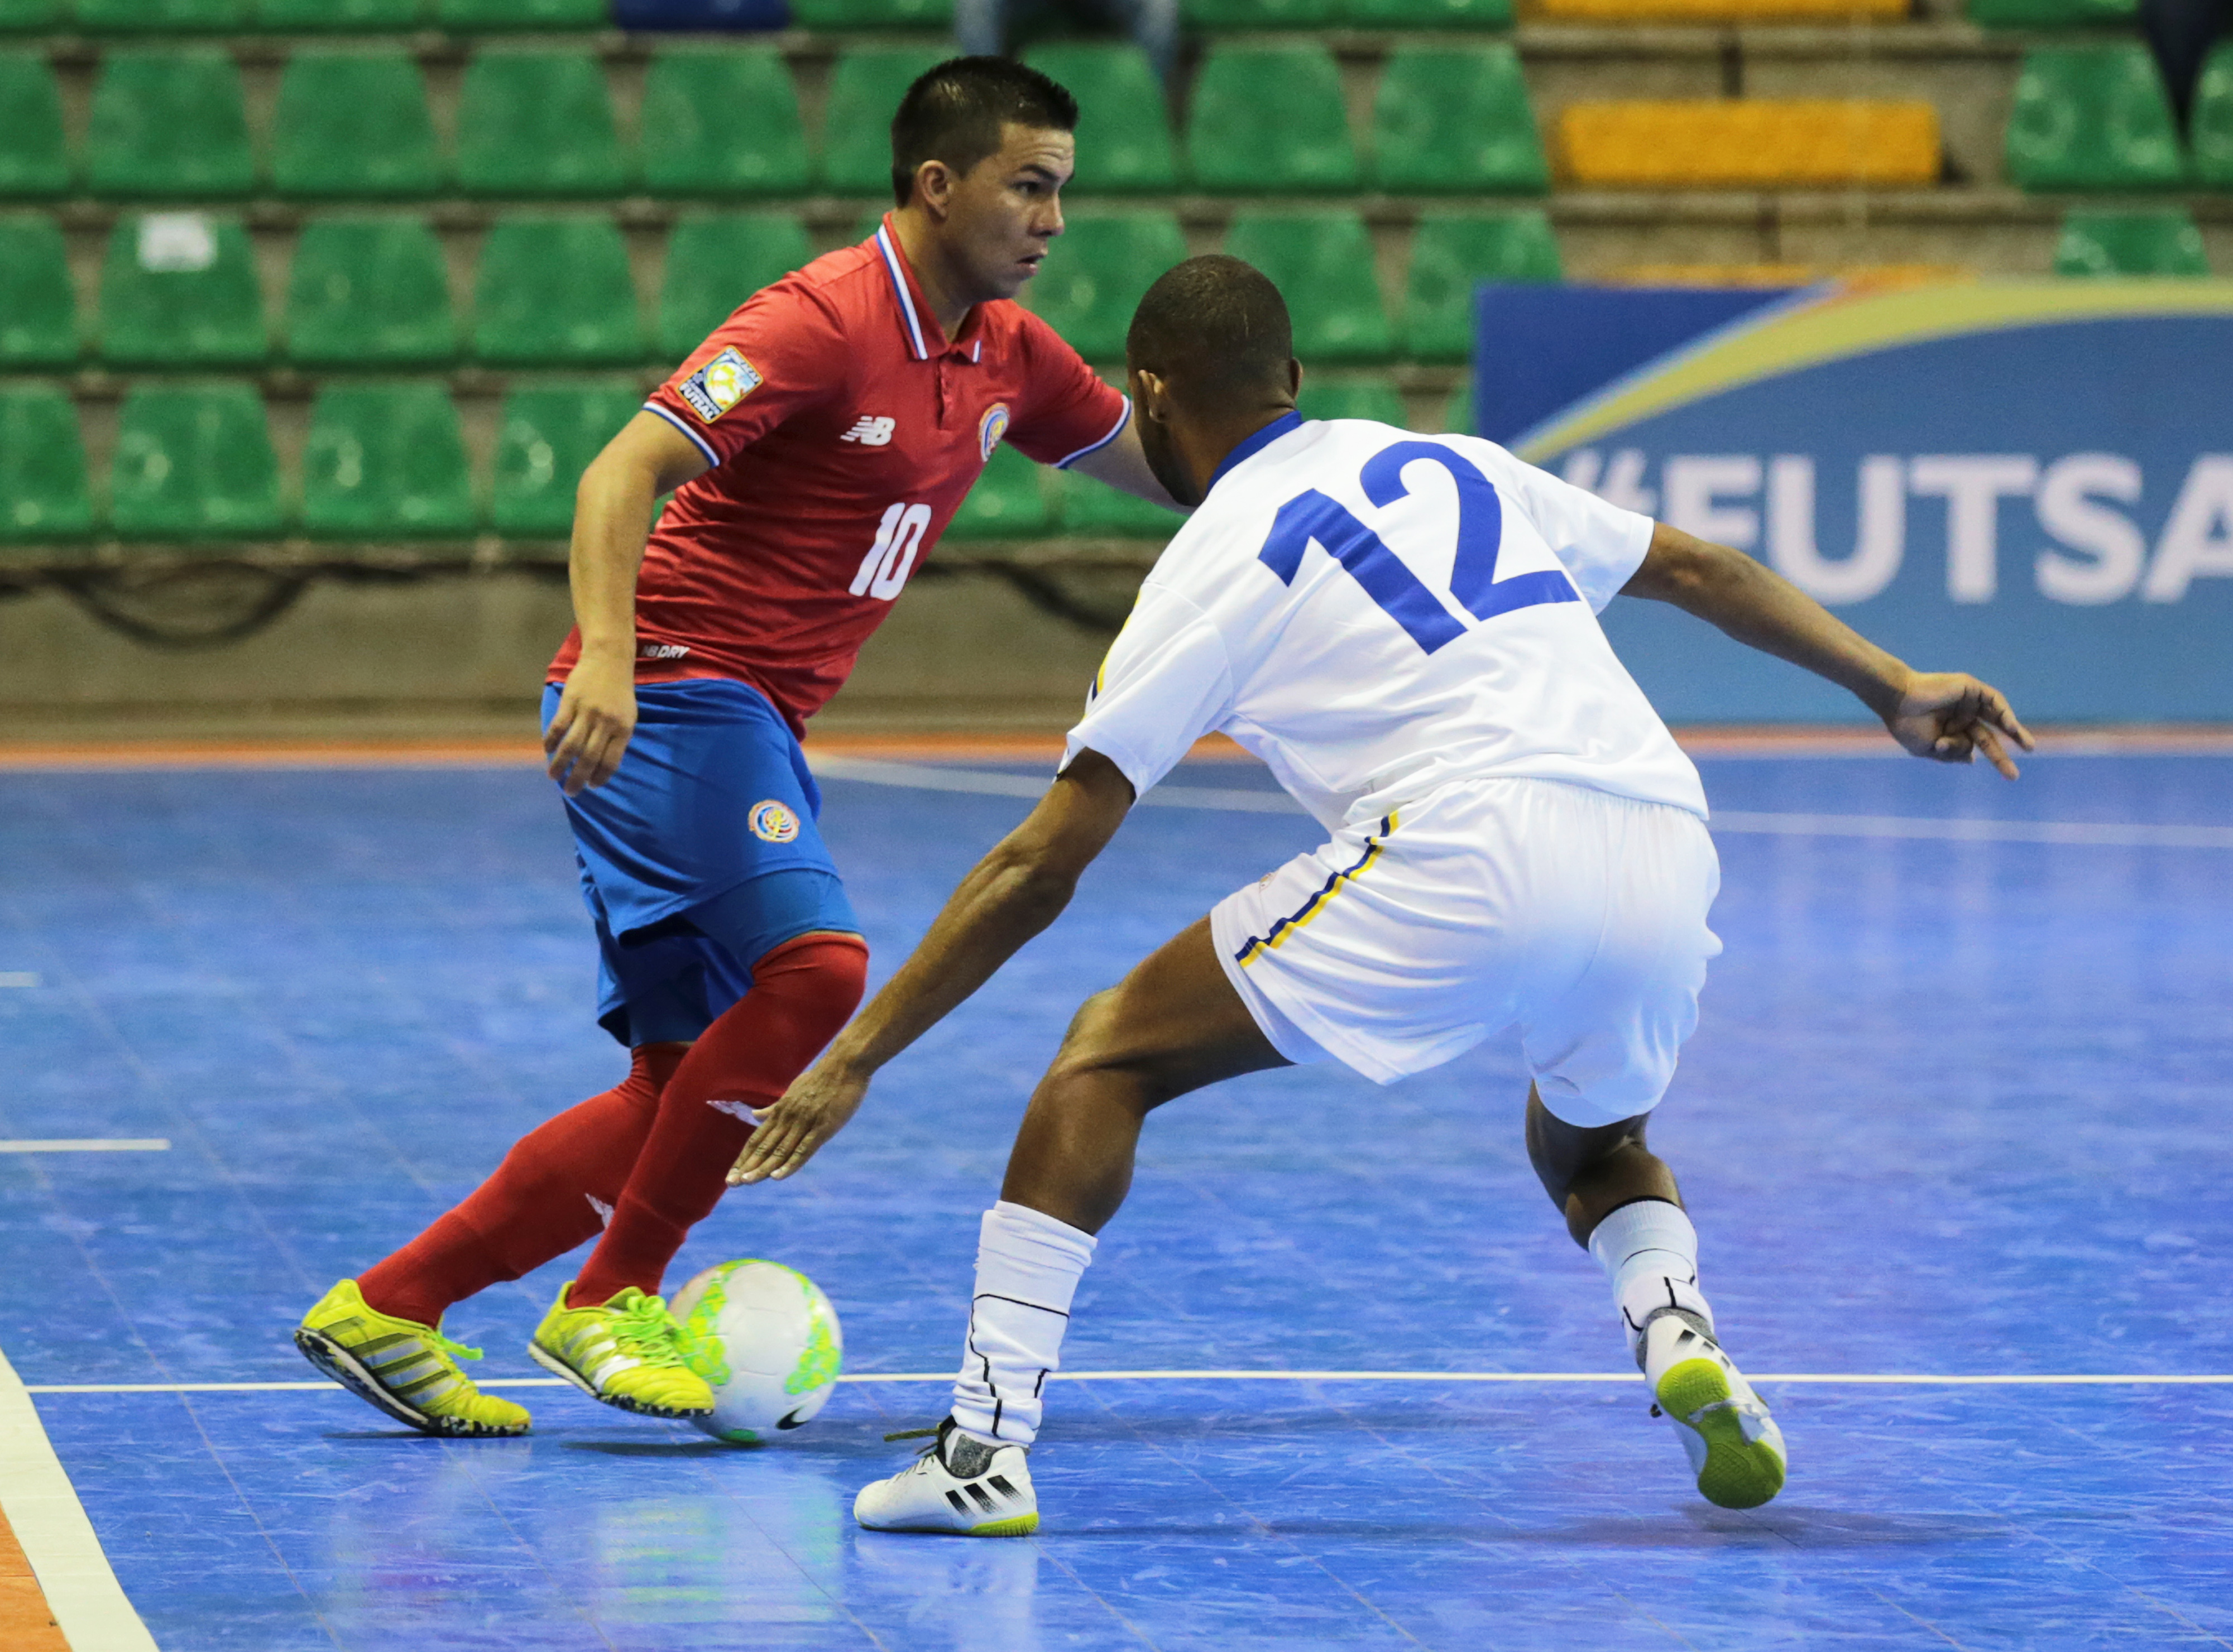 Updates to 2021 Concacaf Futsal Championship